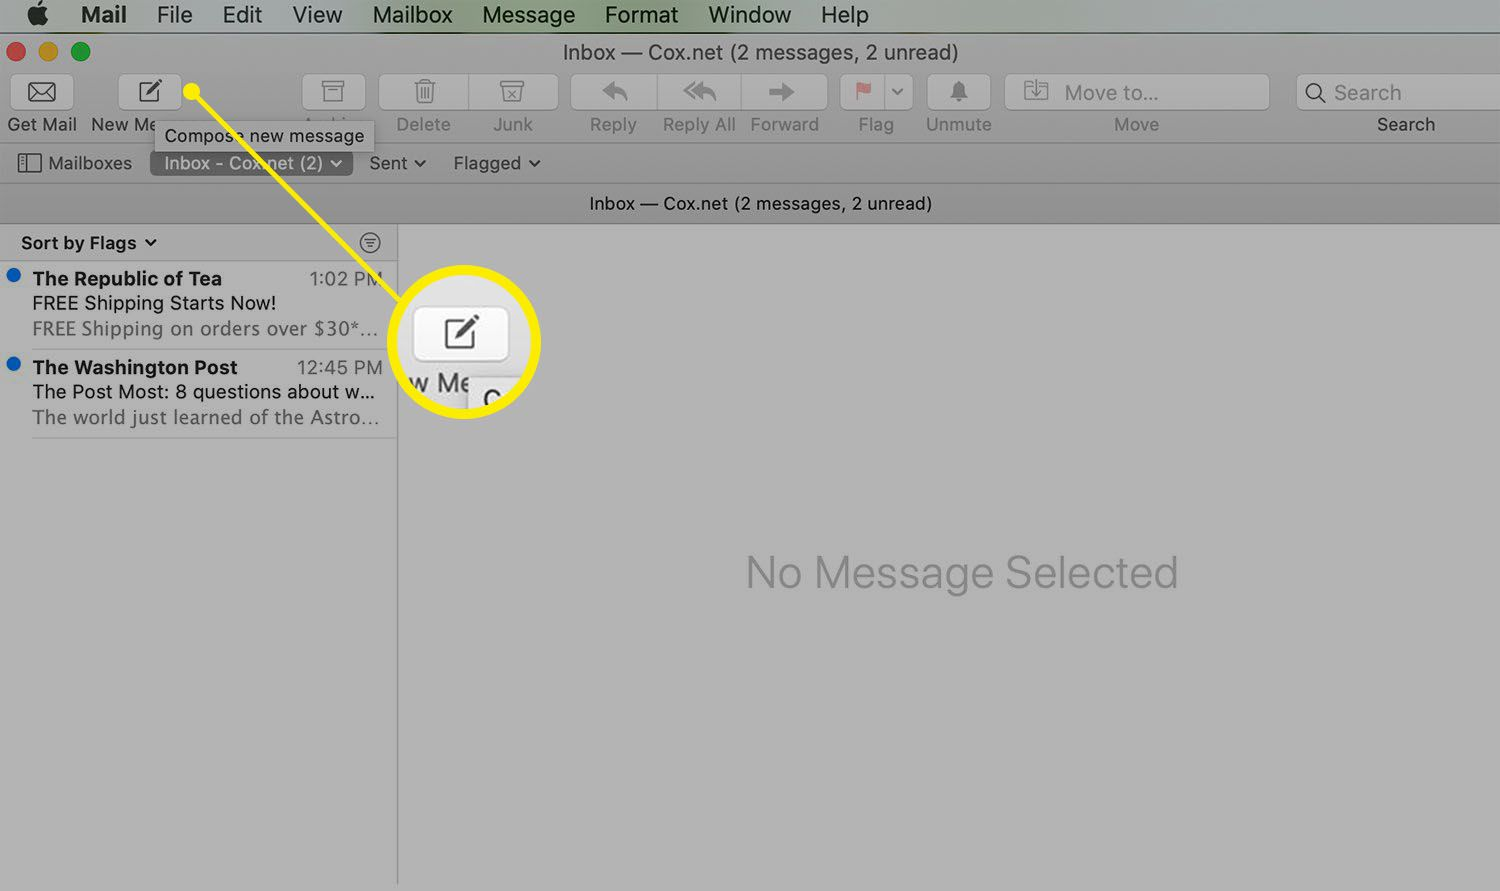 Mail screen showing New Message button